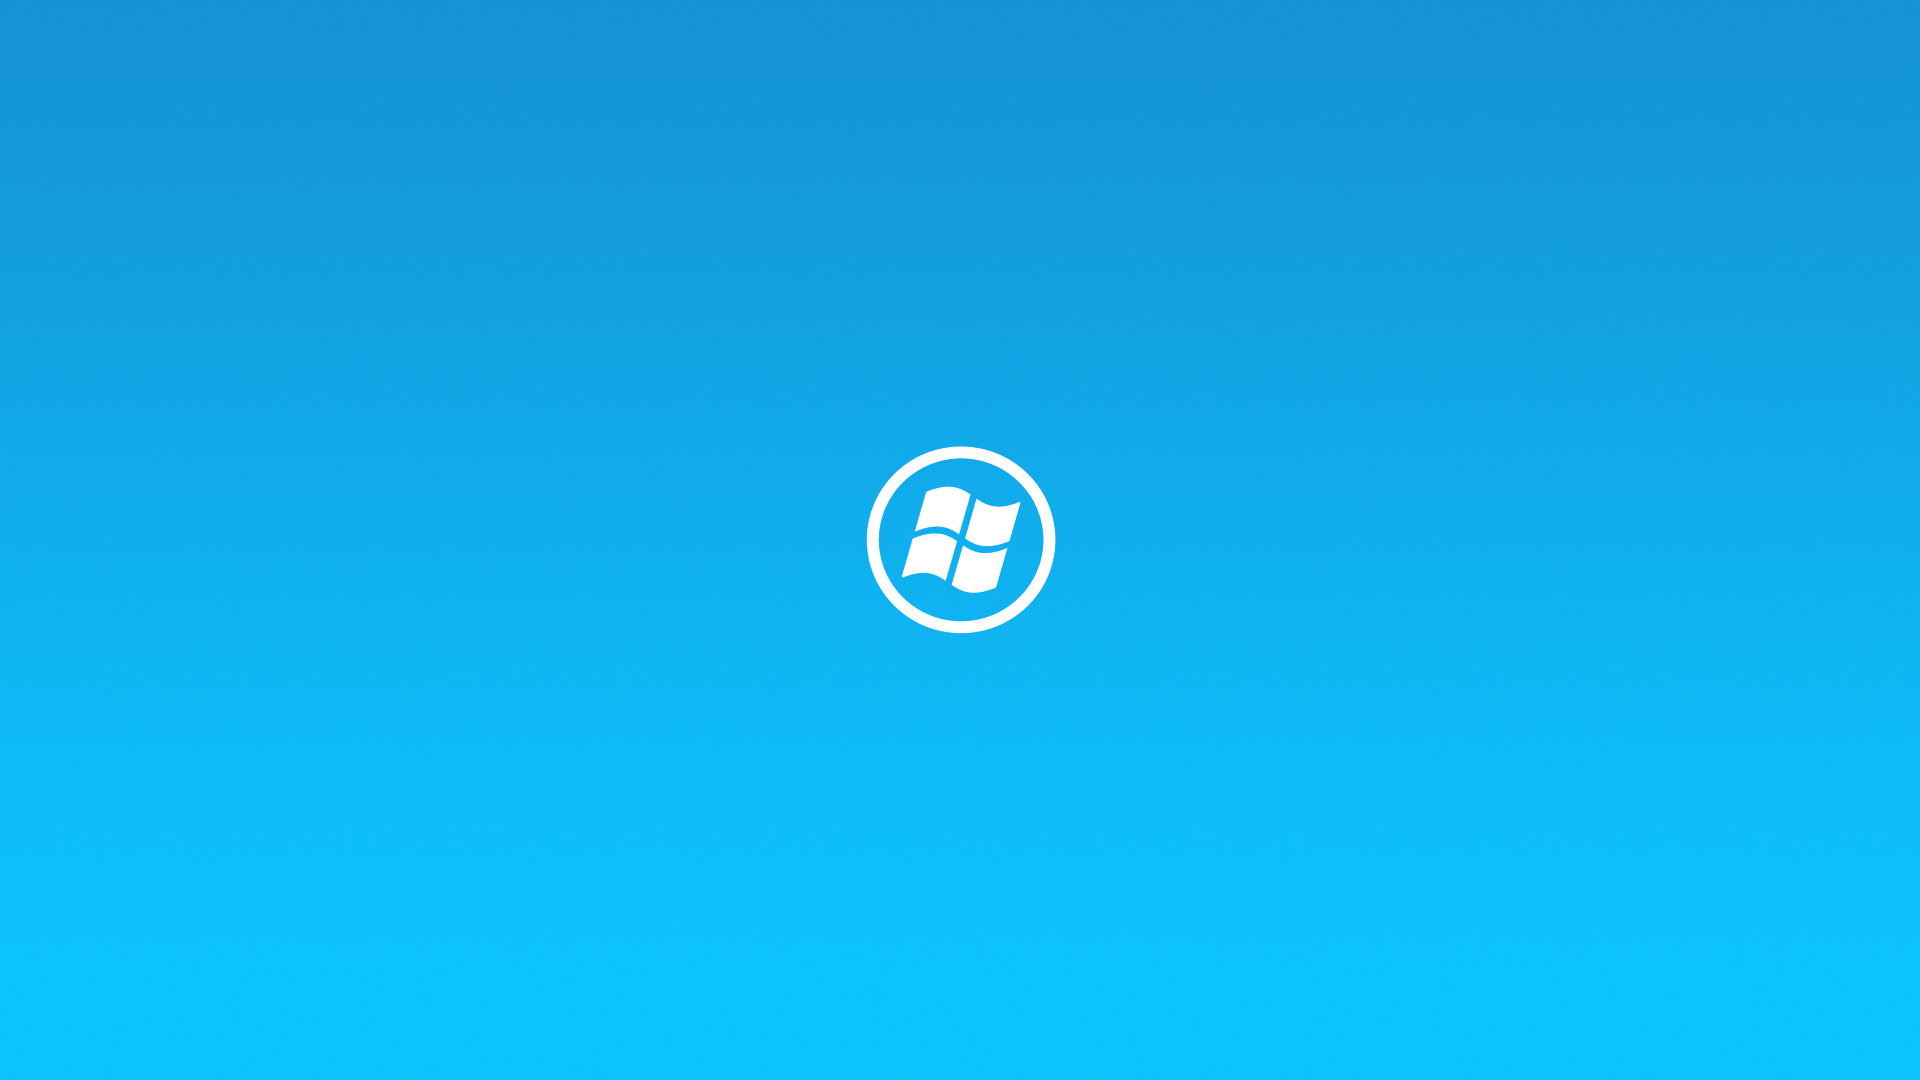 Windows 8 Blue by clsidfft3g Windows 8 Blue by clsidfft3g